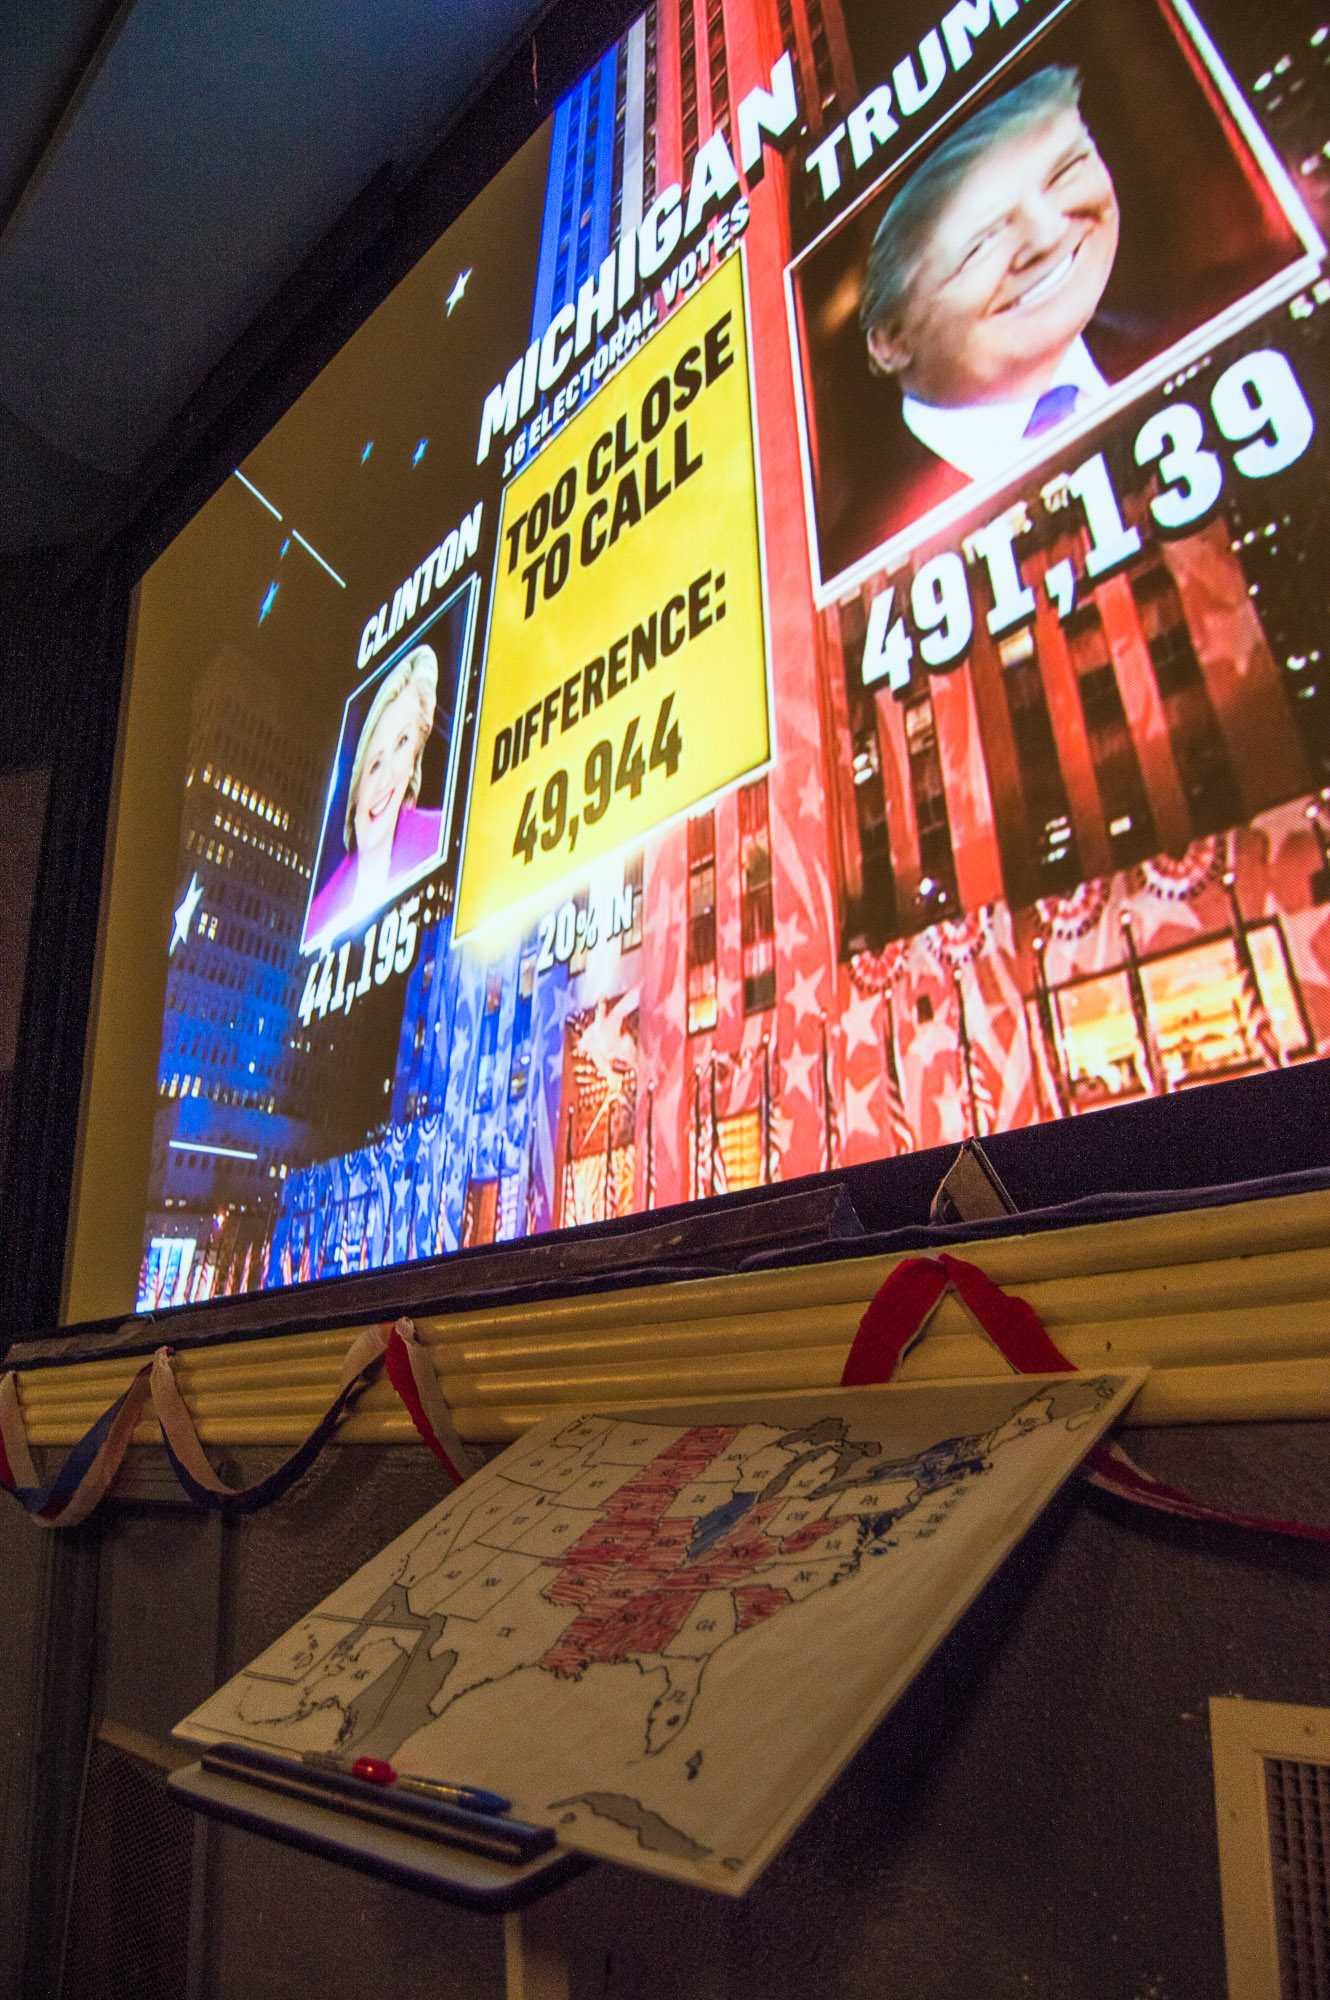 The 2016 election updates are projected on the screen at the Art Theater on Tuesday, November 8, 2016.